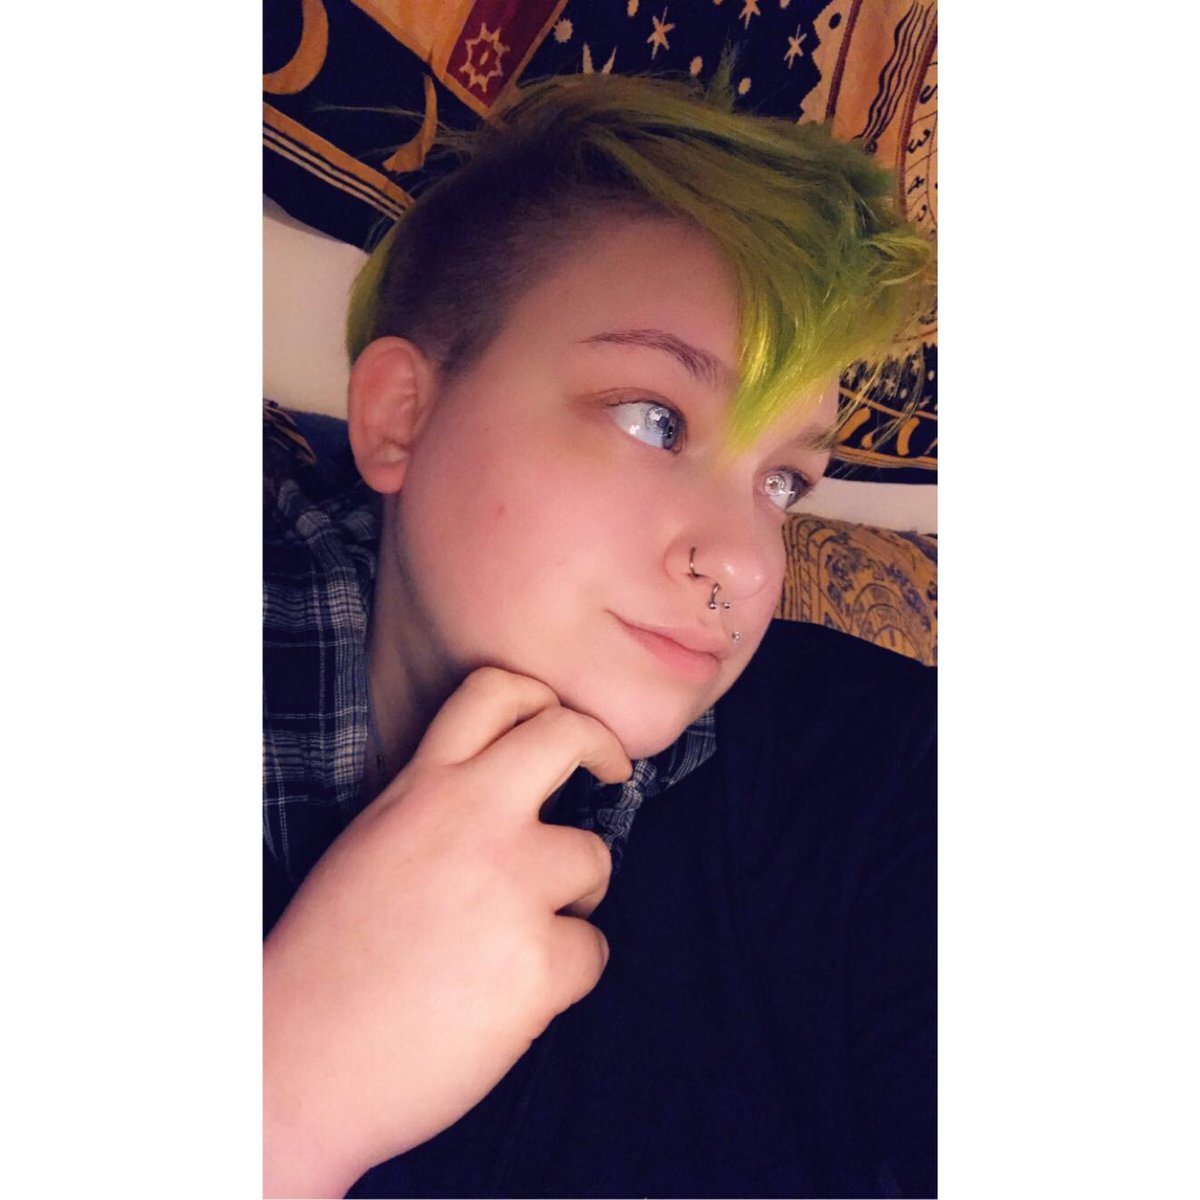 Just a smol they/them  #lgbtqforcorpse